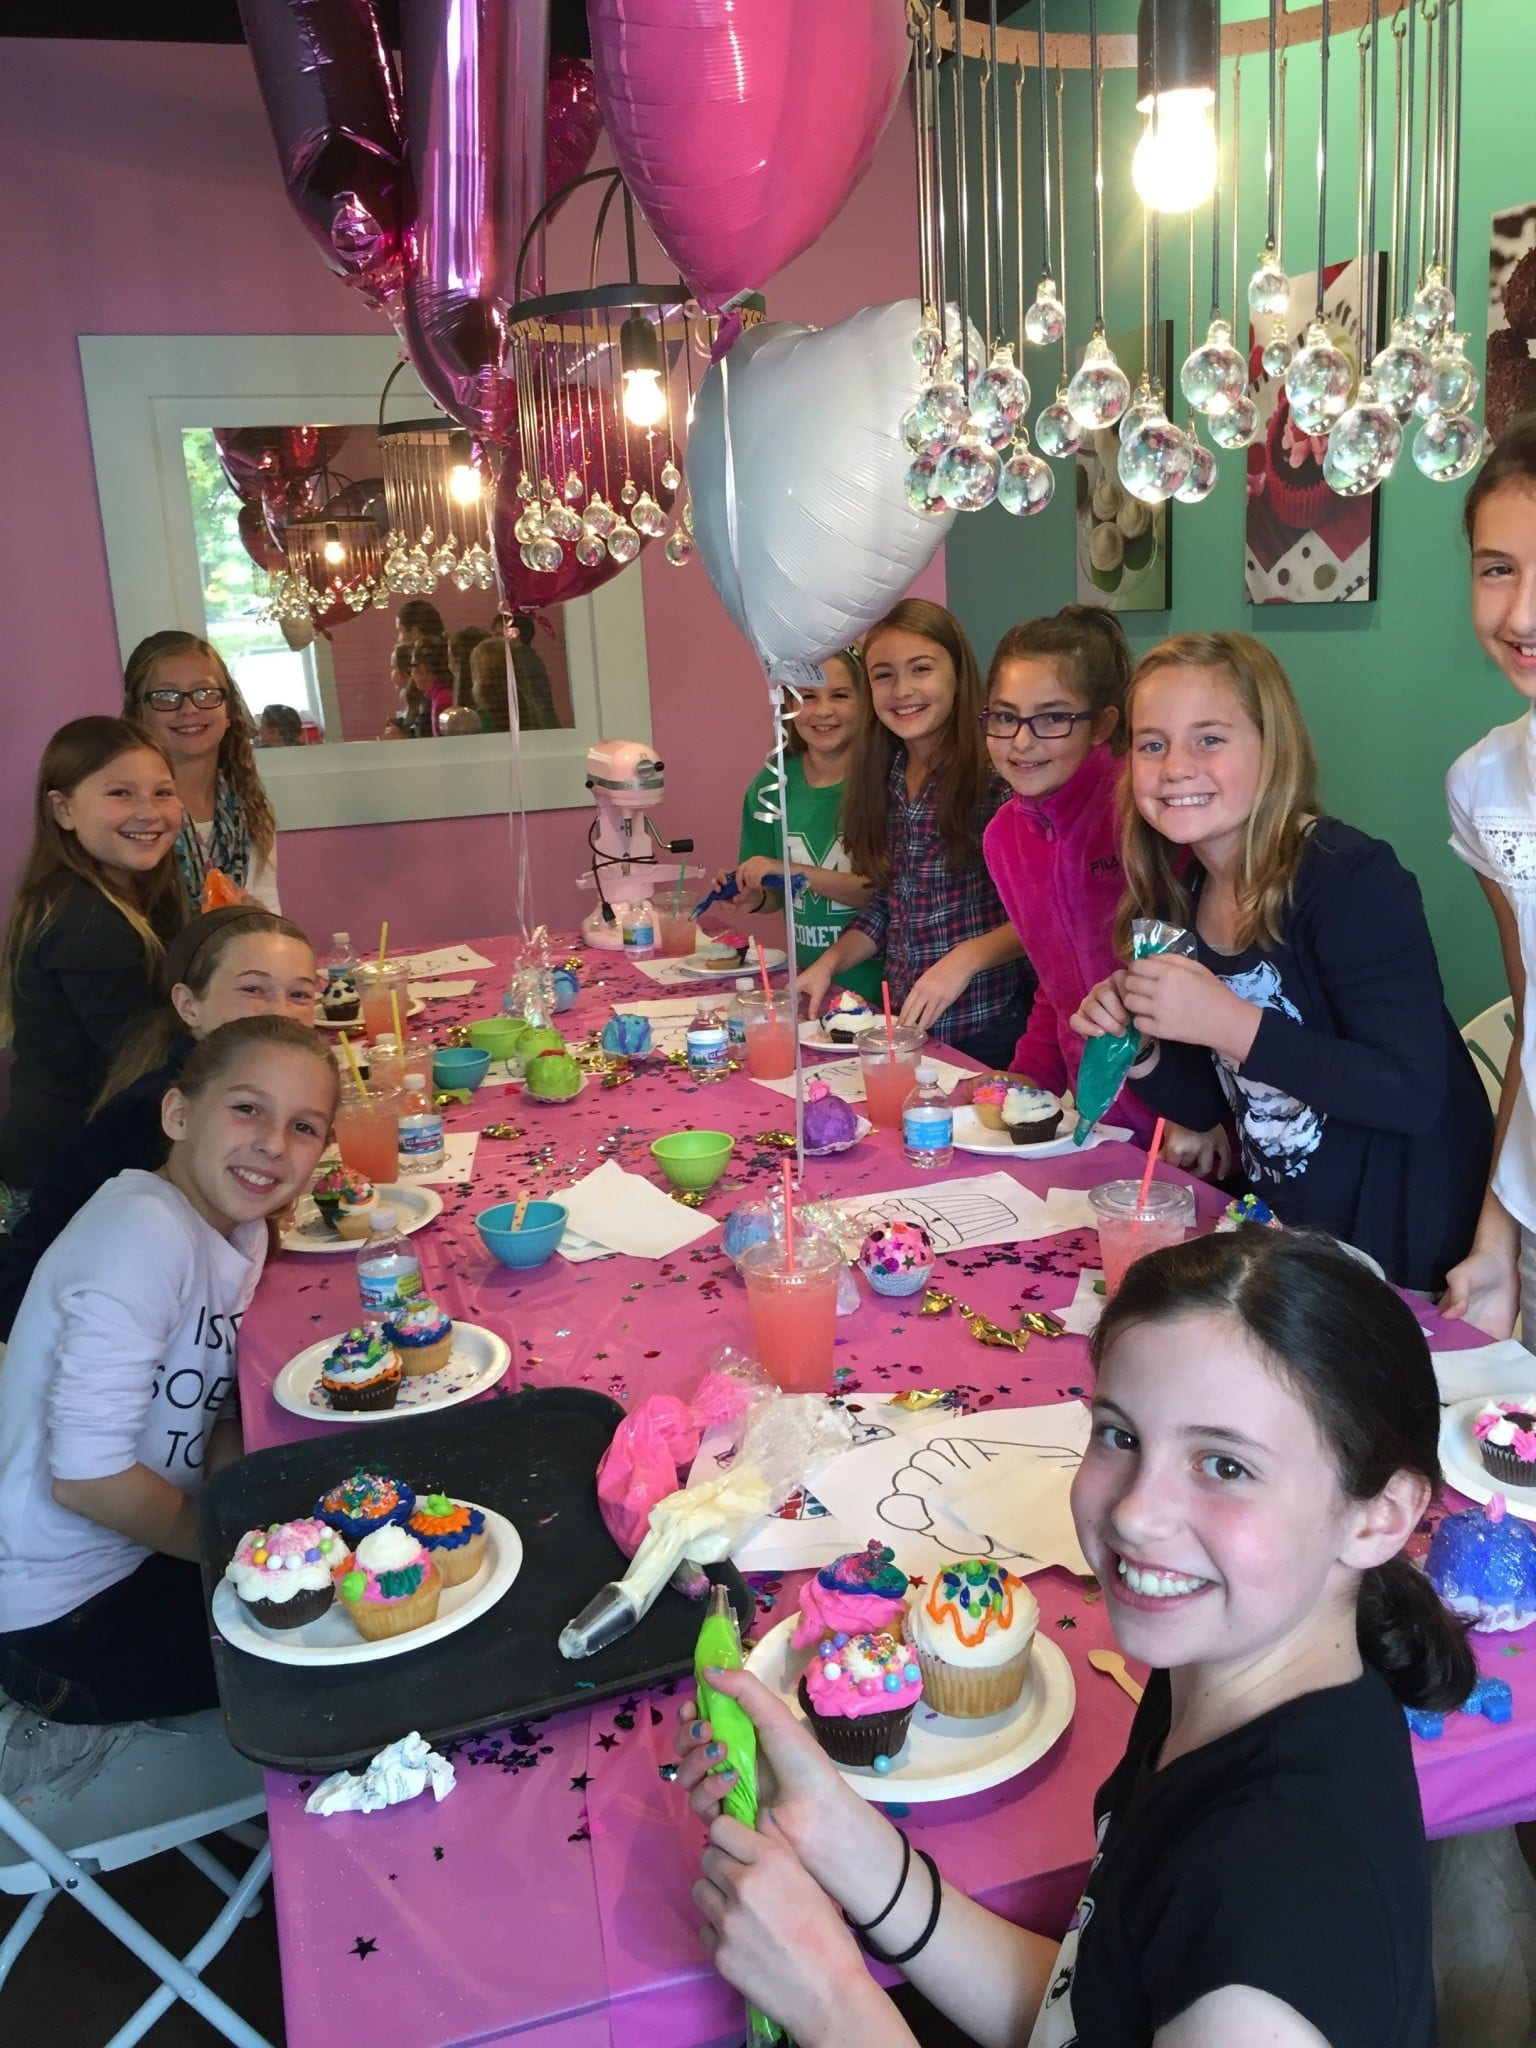 cupcake decorating party in the party room - Cupcake Decorating Party